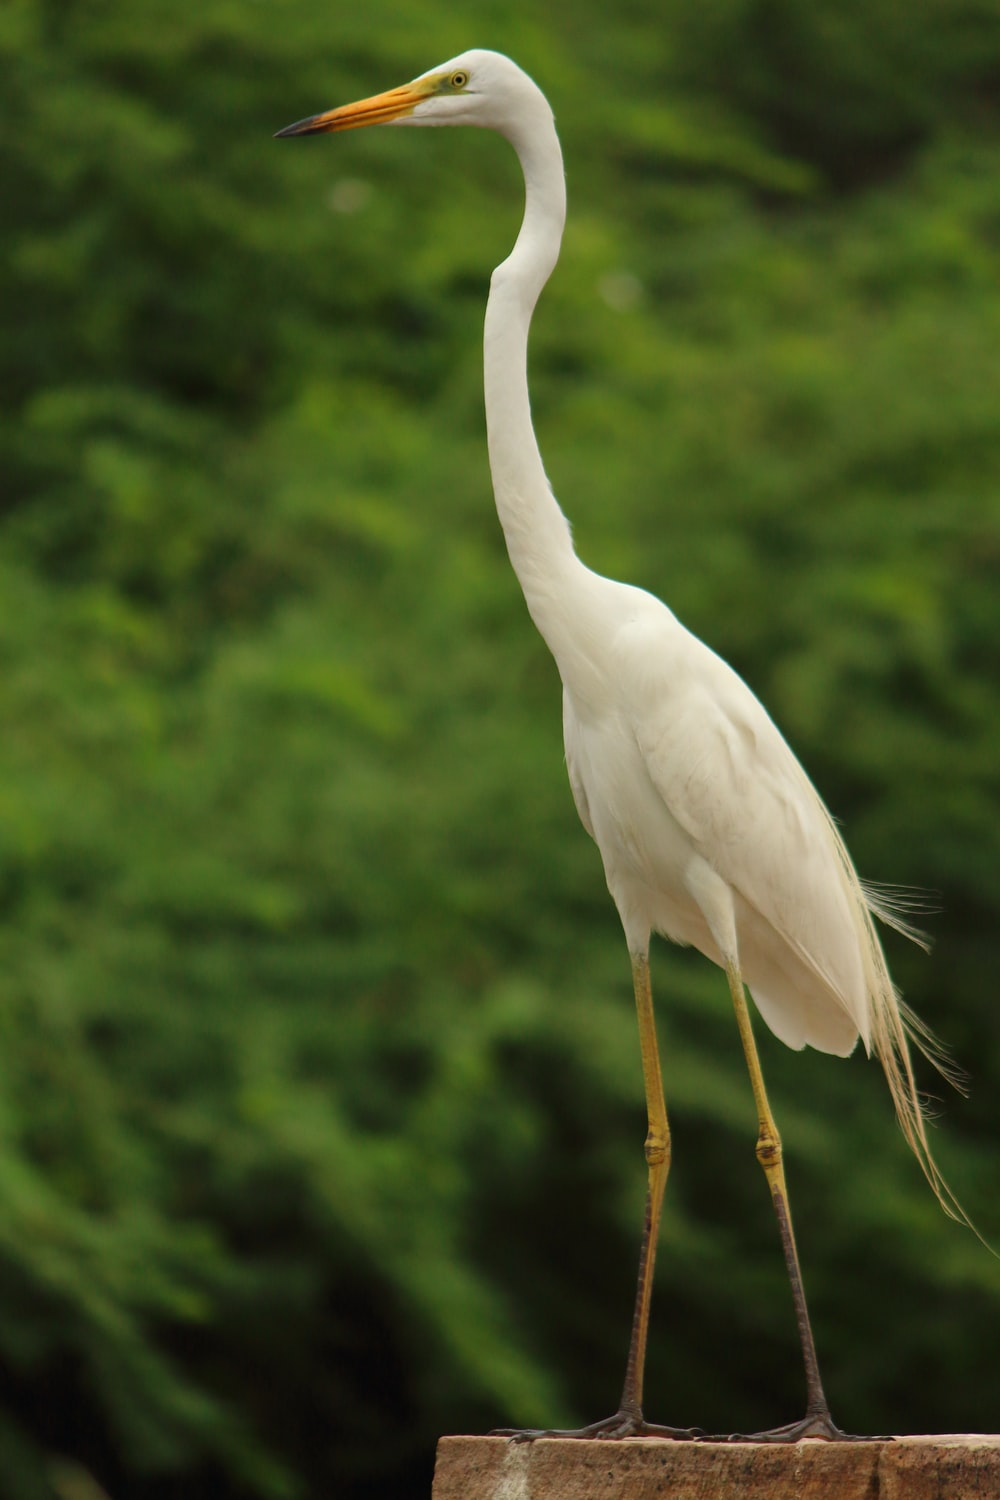 selective focus photography of white long-necked bird during daytime